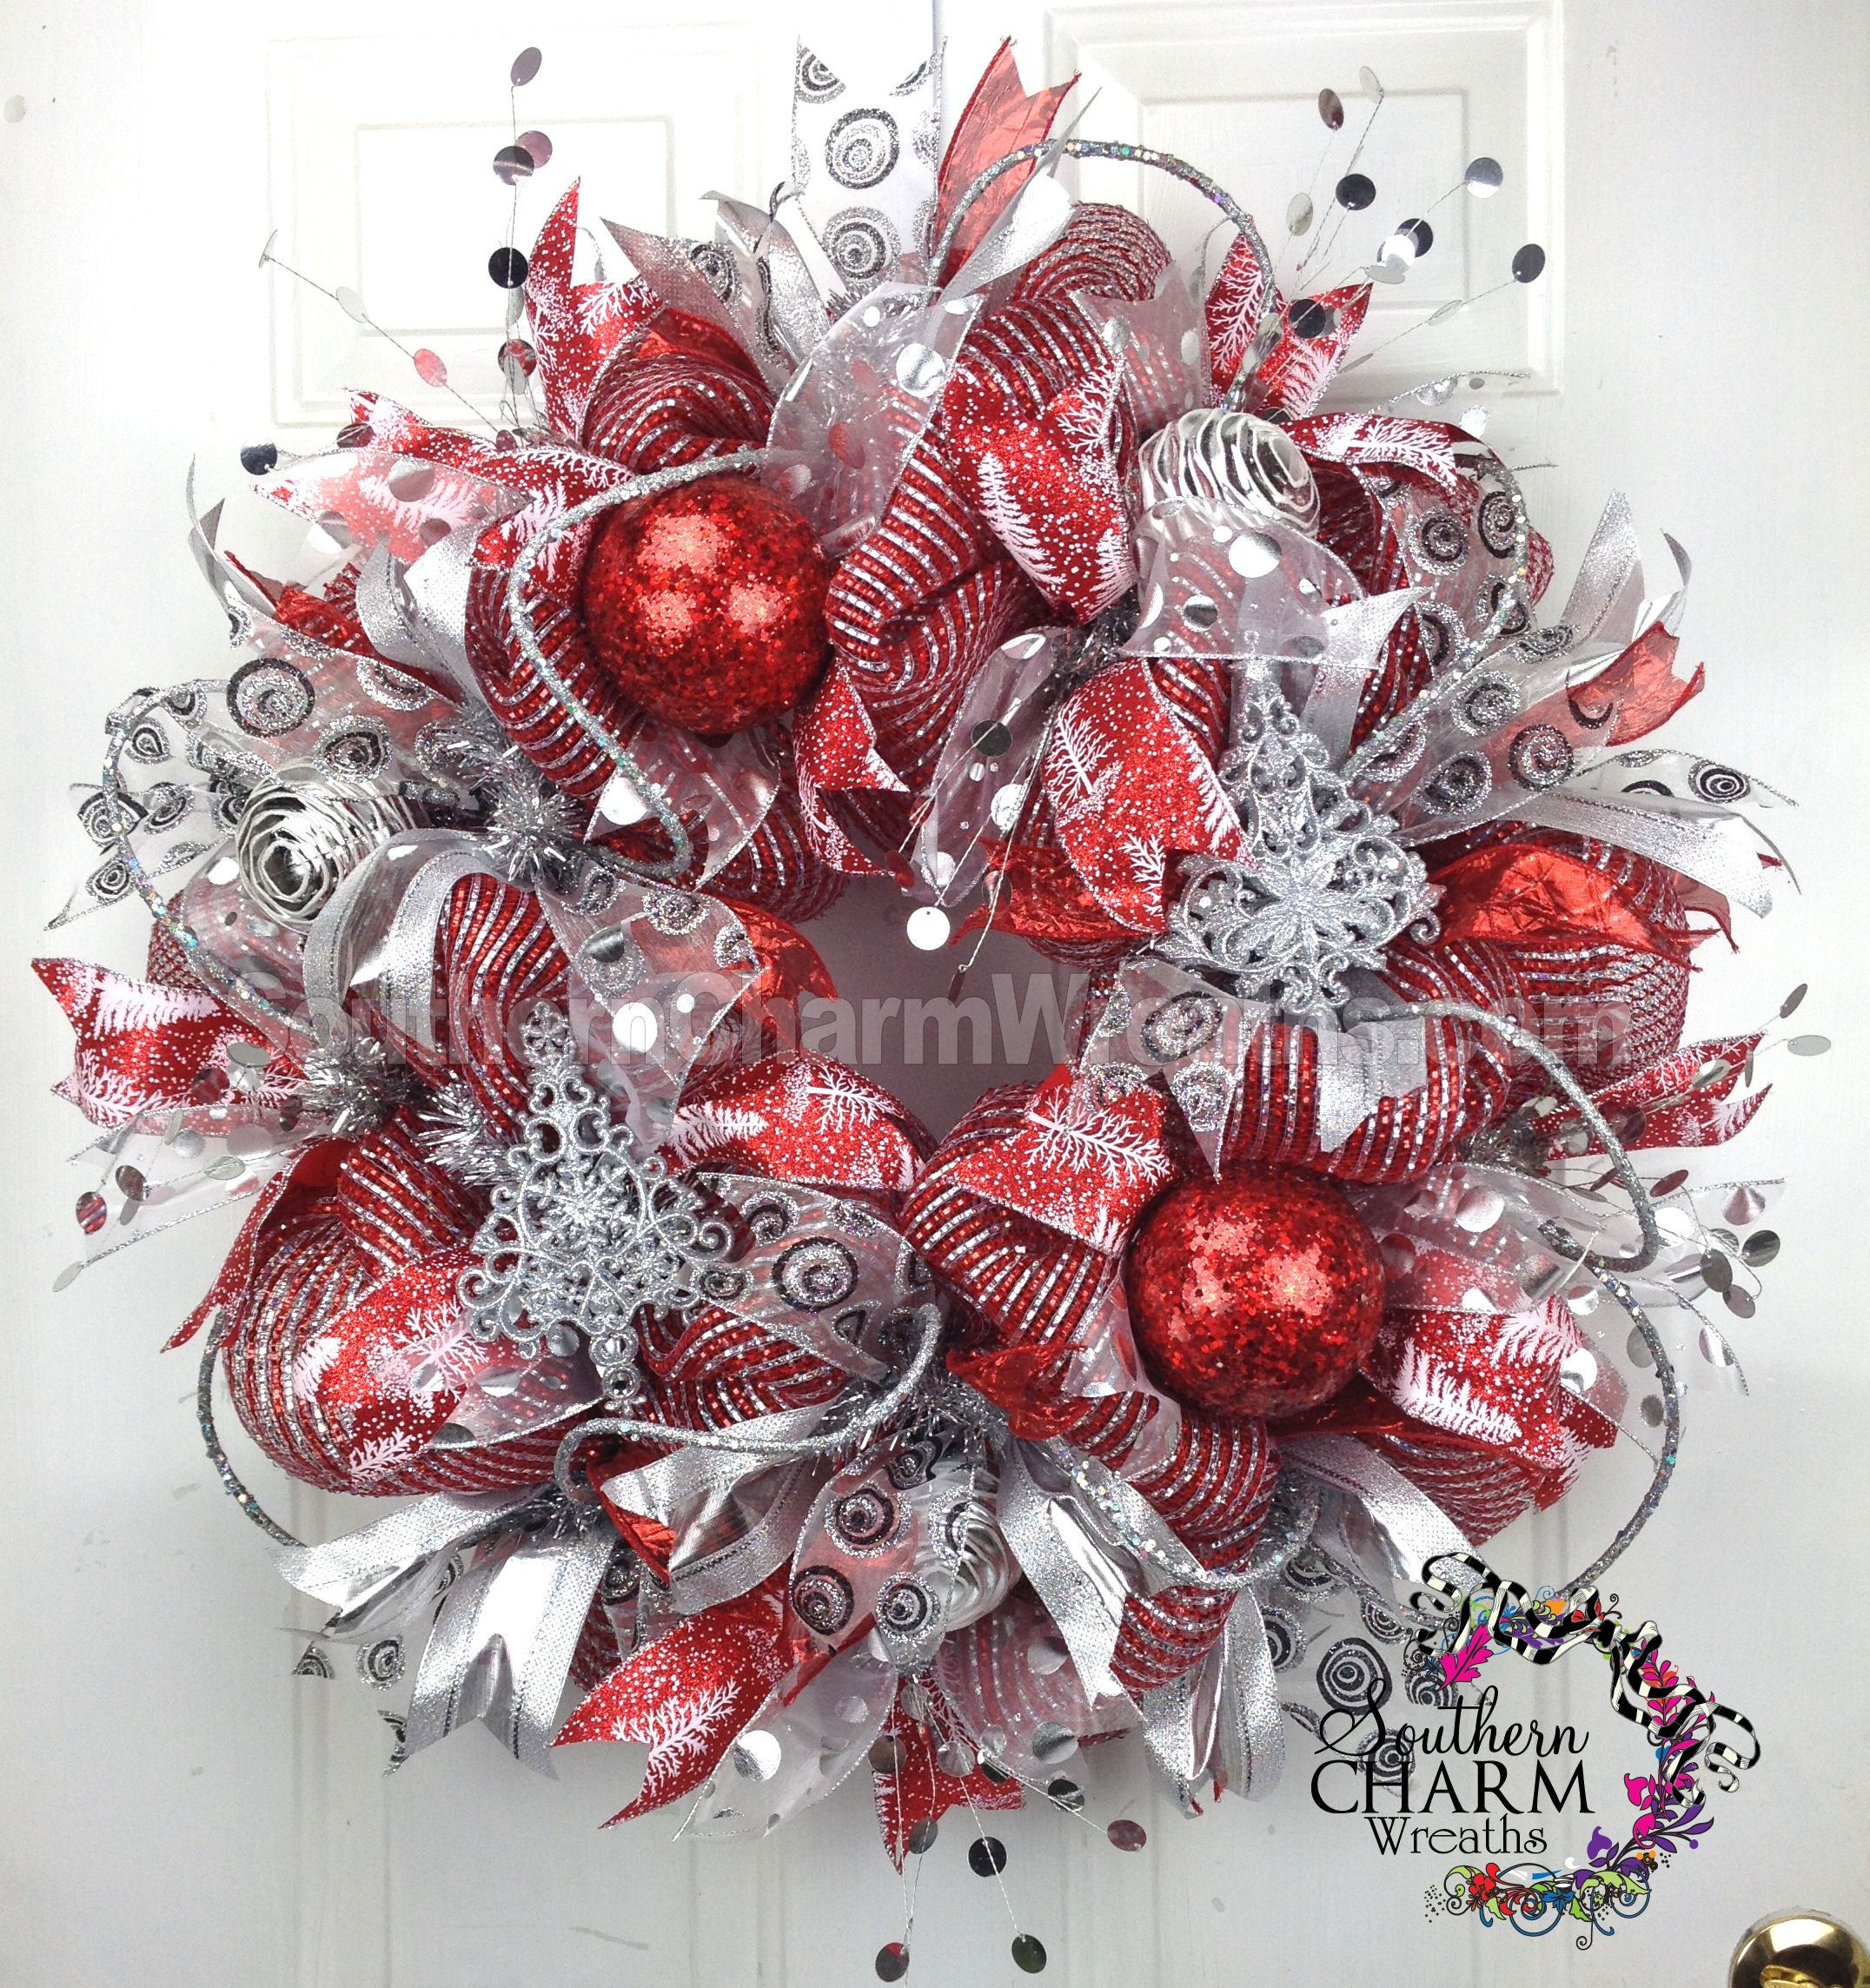 Xl Deluxe Deco Mesh Christmas Wreath For Door Or Wall Red Silver Tree Ornaments Deco Mesh Christmas Wreaths Christmas Mesh Wreaths Christmas Wreaths